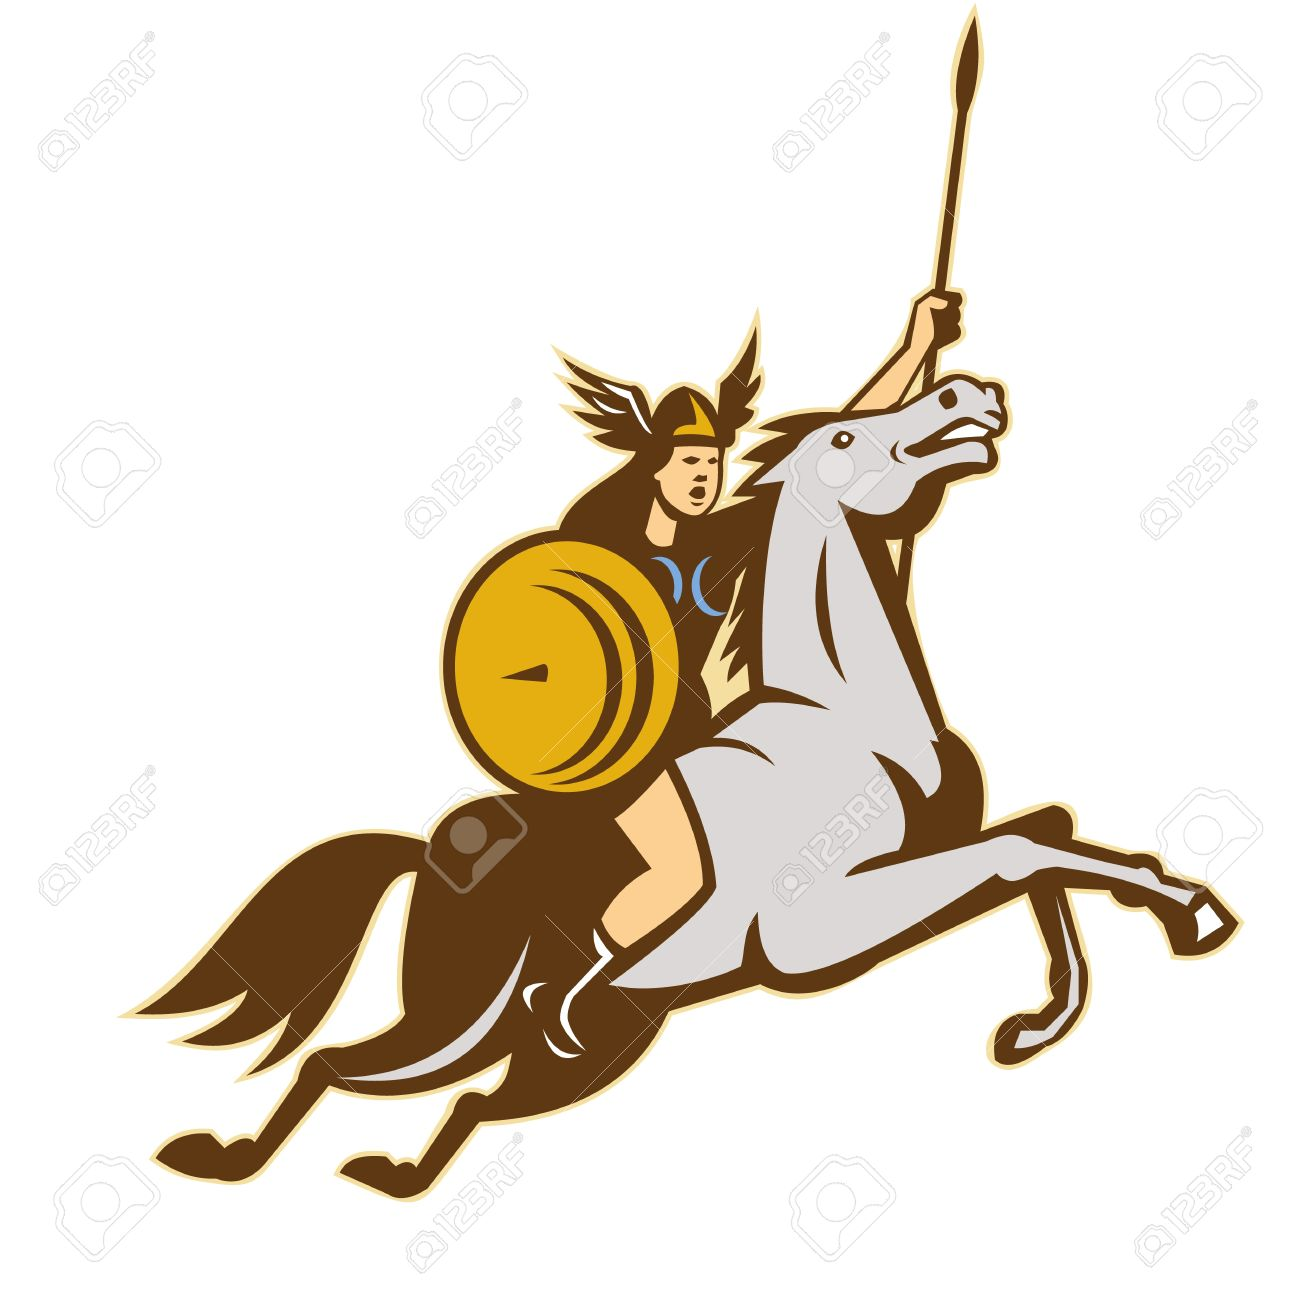 Norse Mythology clipart #4, Download drawings